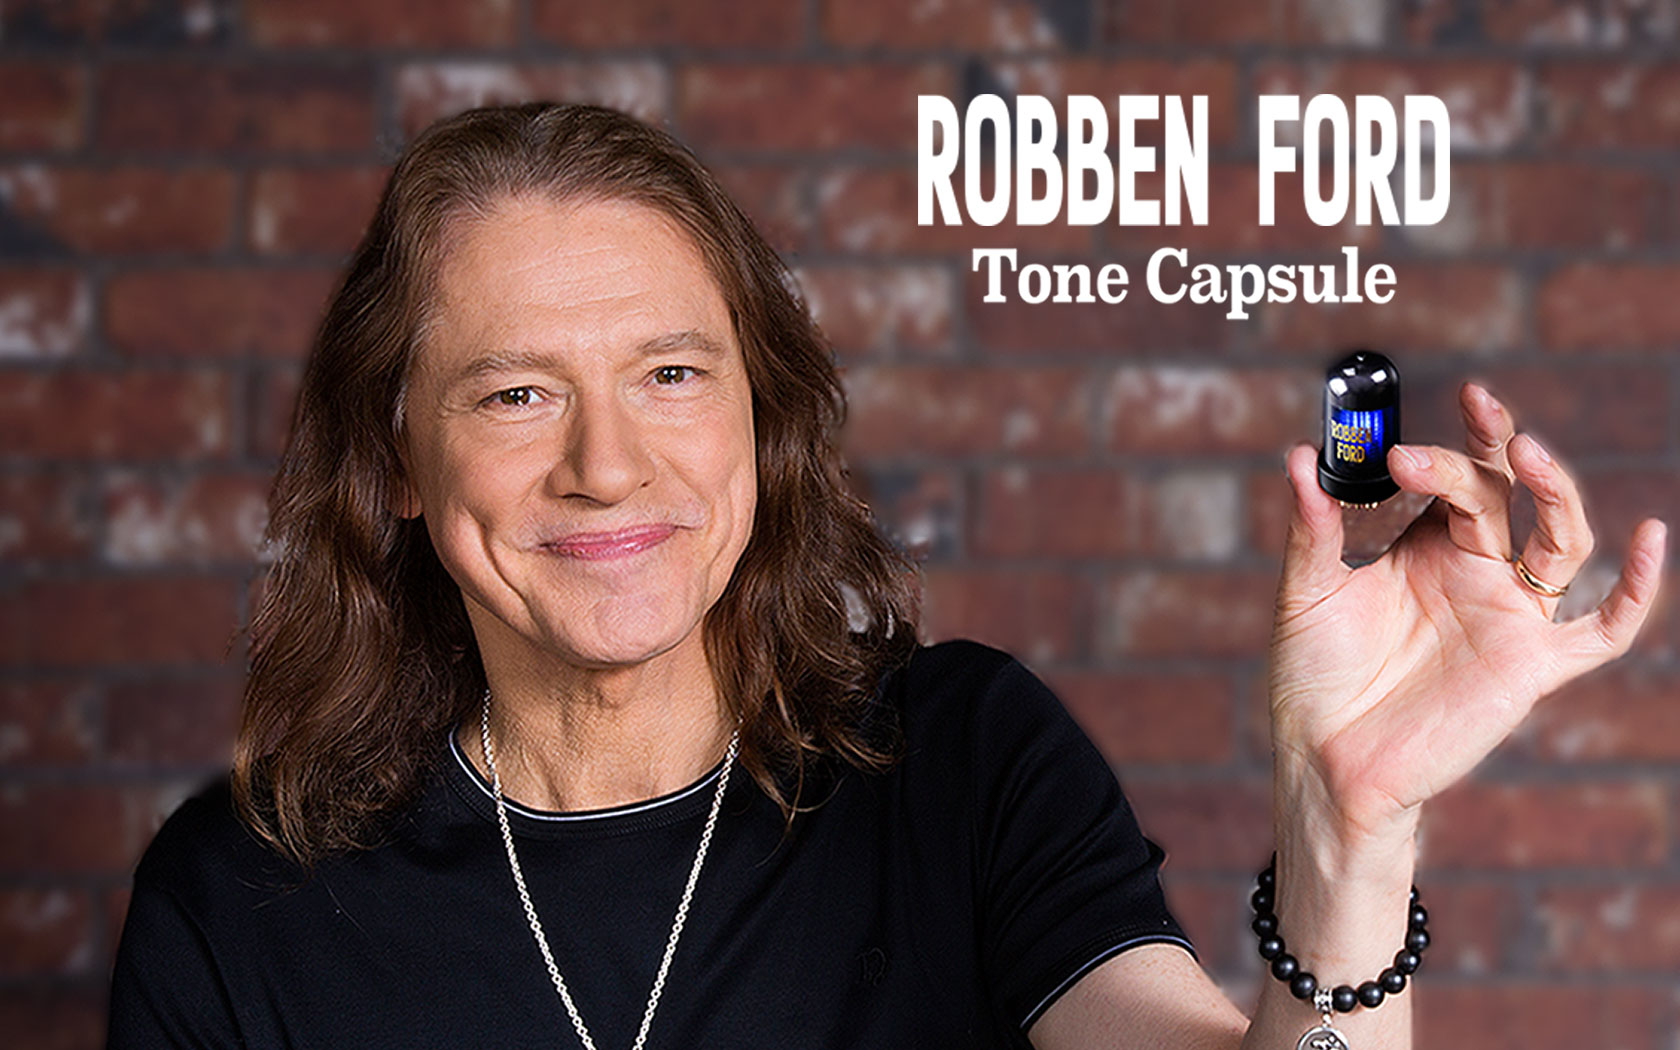 Roland Norge Bc Tc Rf Robben Ford Blues Cube Tone Capsule